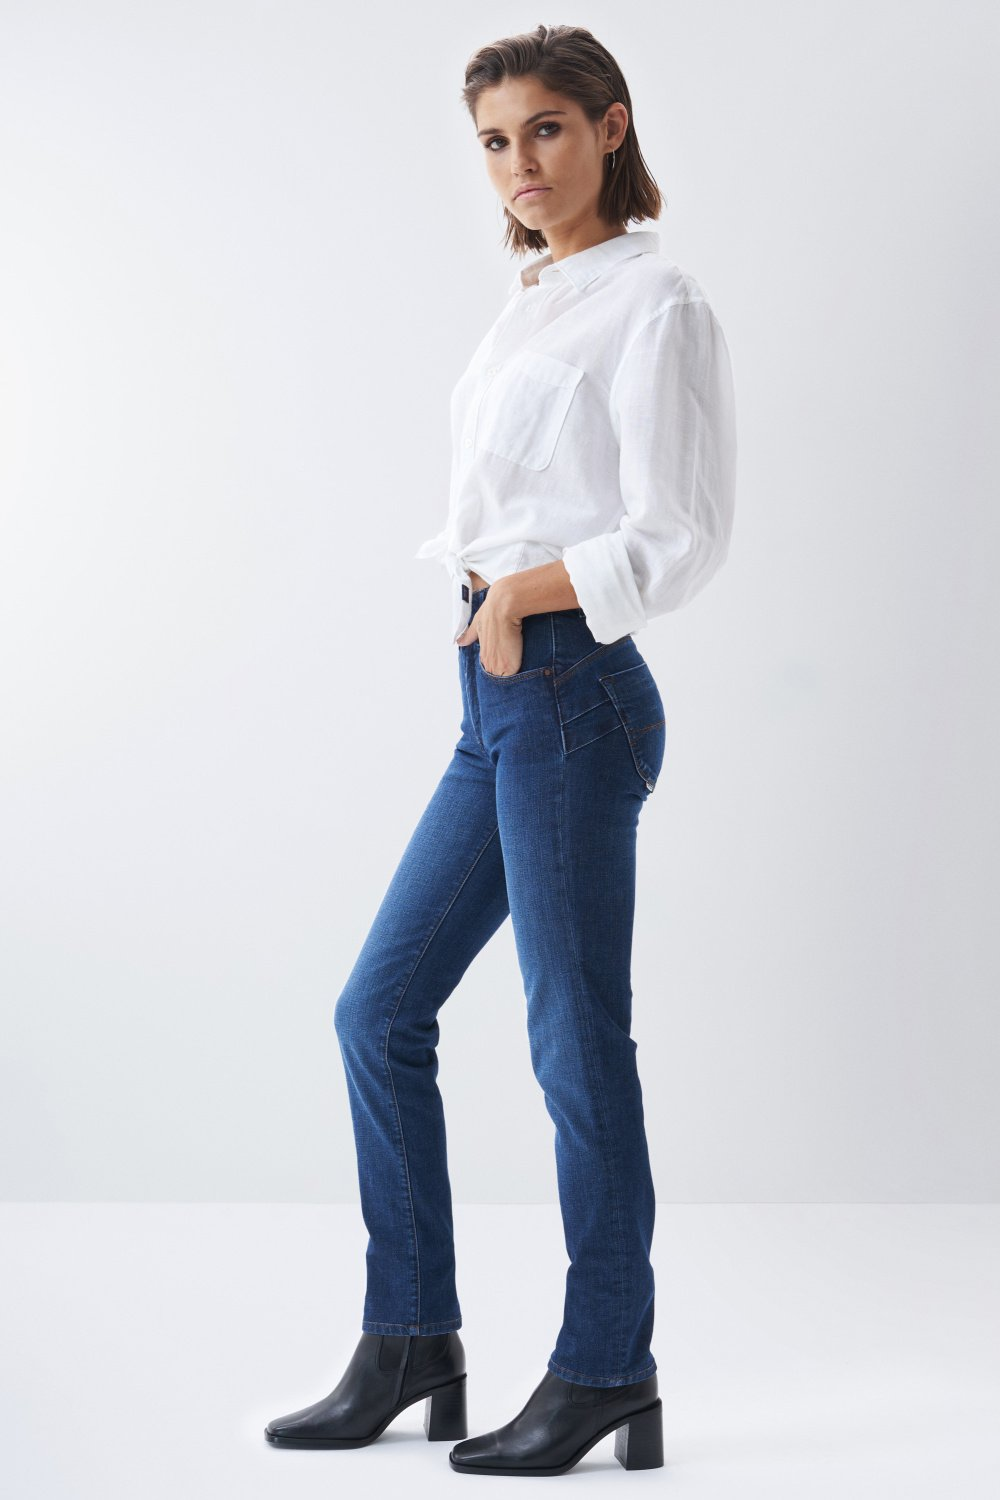 Jeans Secret, Push In, Slim Fit, mit Waschungseffekten - Salsa